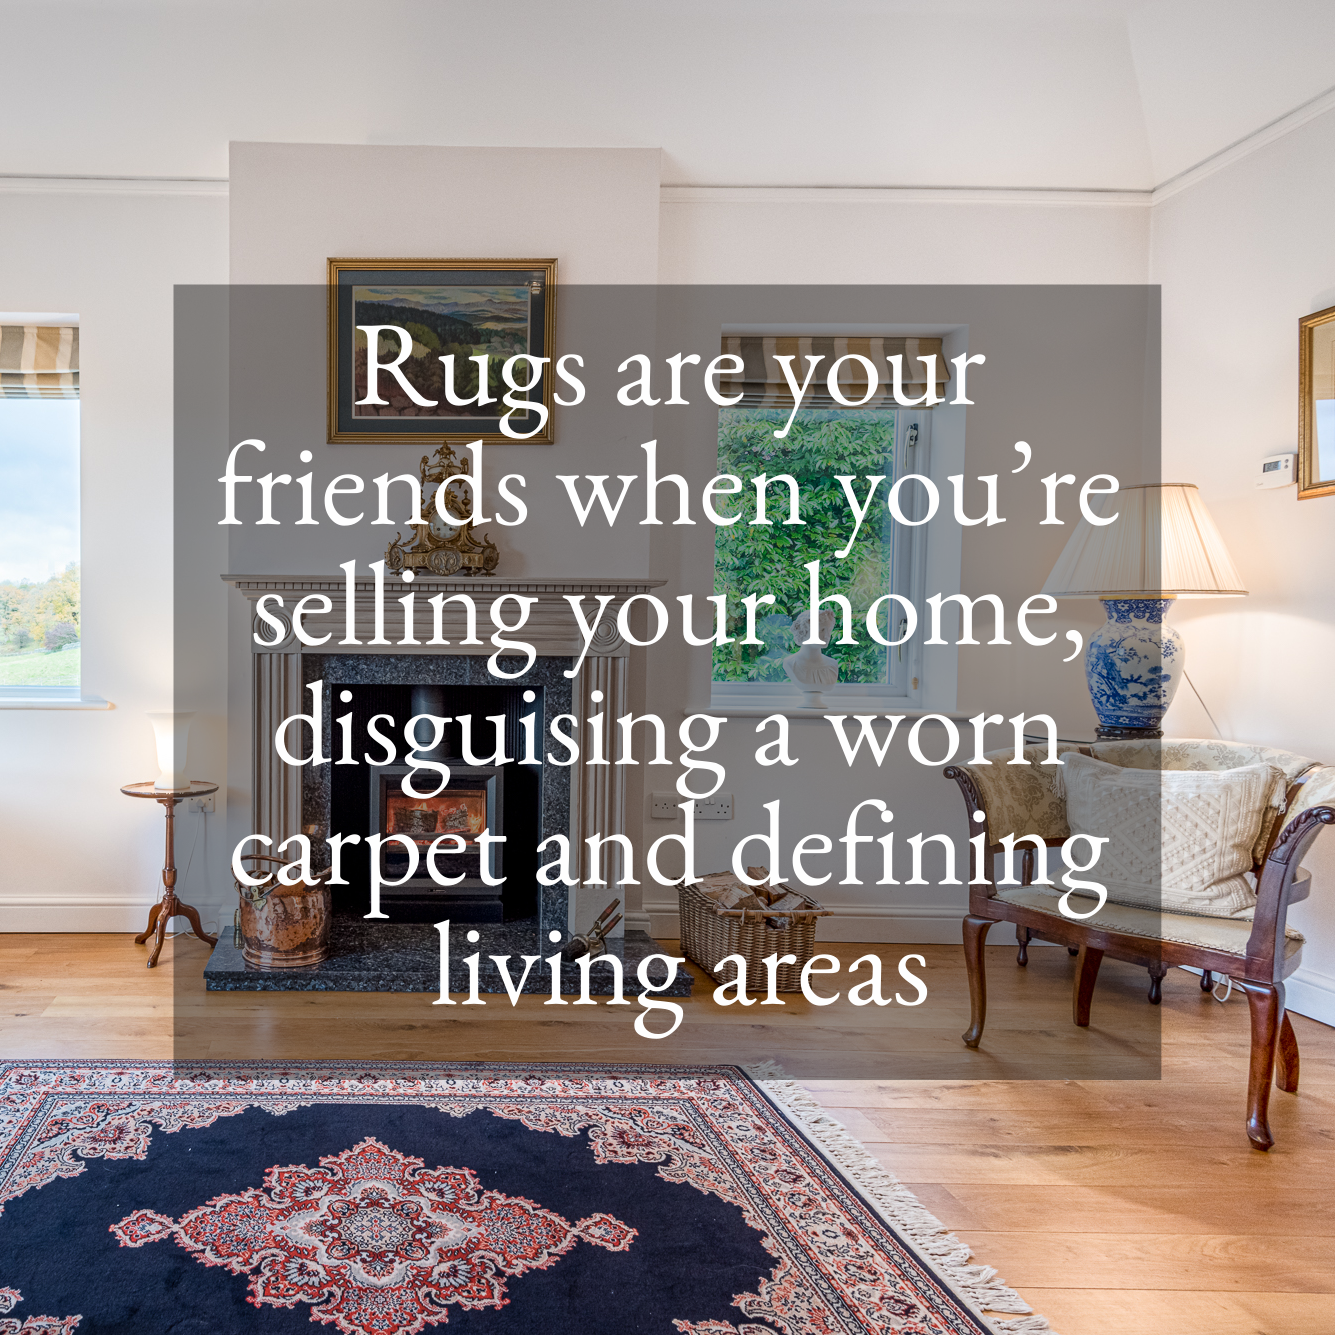 tg9-rugs-are-your-friends